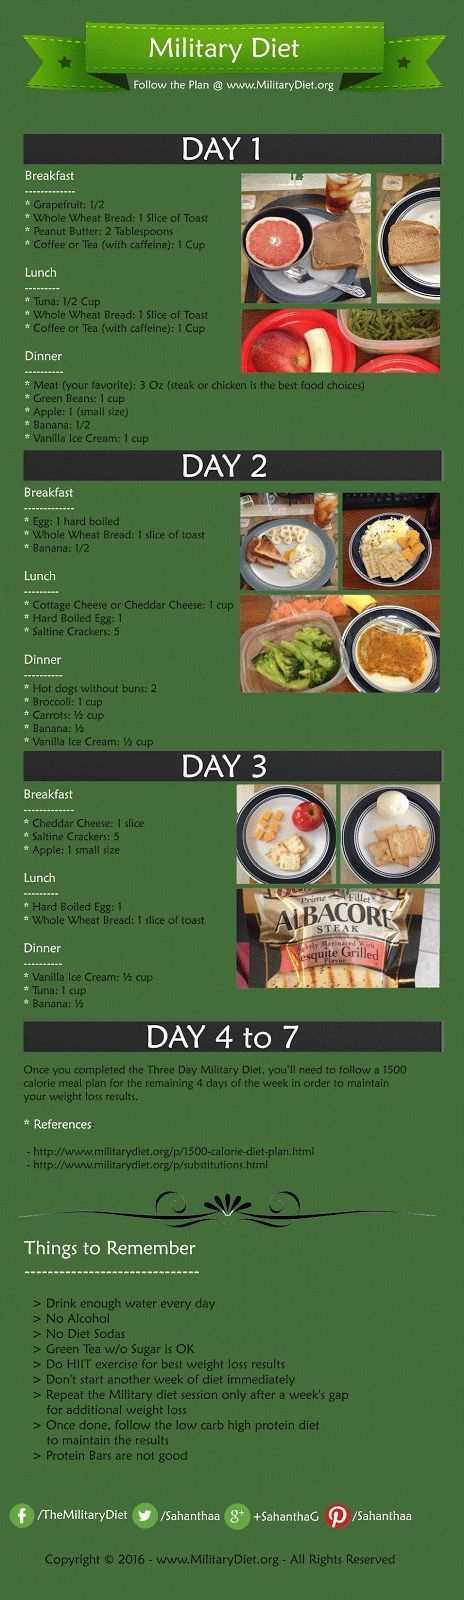 See more here ► https://www.youtube.com/watch?v=__Gi8cvdquw Tags: the quick way to lose weight, quick weight loss centers, quick way to lose weight in a week - The Military Diet Plan Infographic #exercise #diet #workout #fitness #health